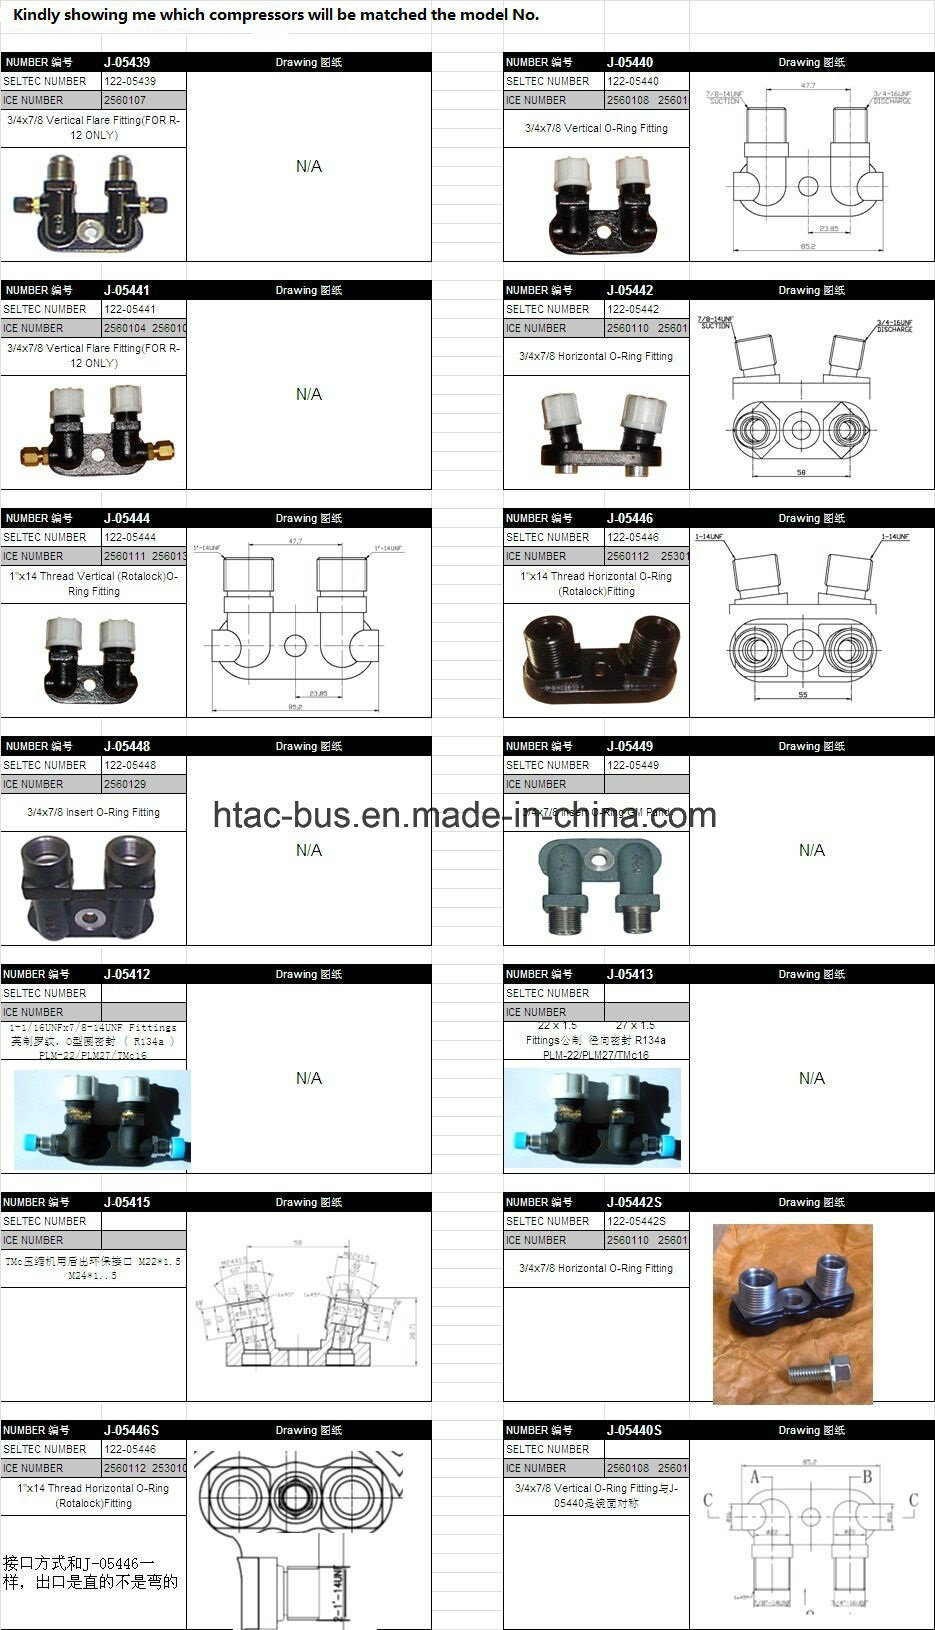 Copy of Compressor Dks32 Middle Bus Air Conditioner